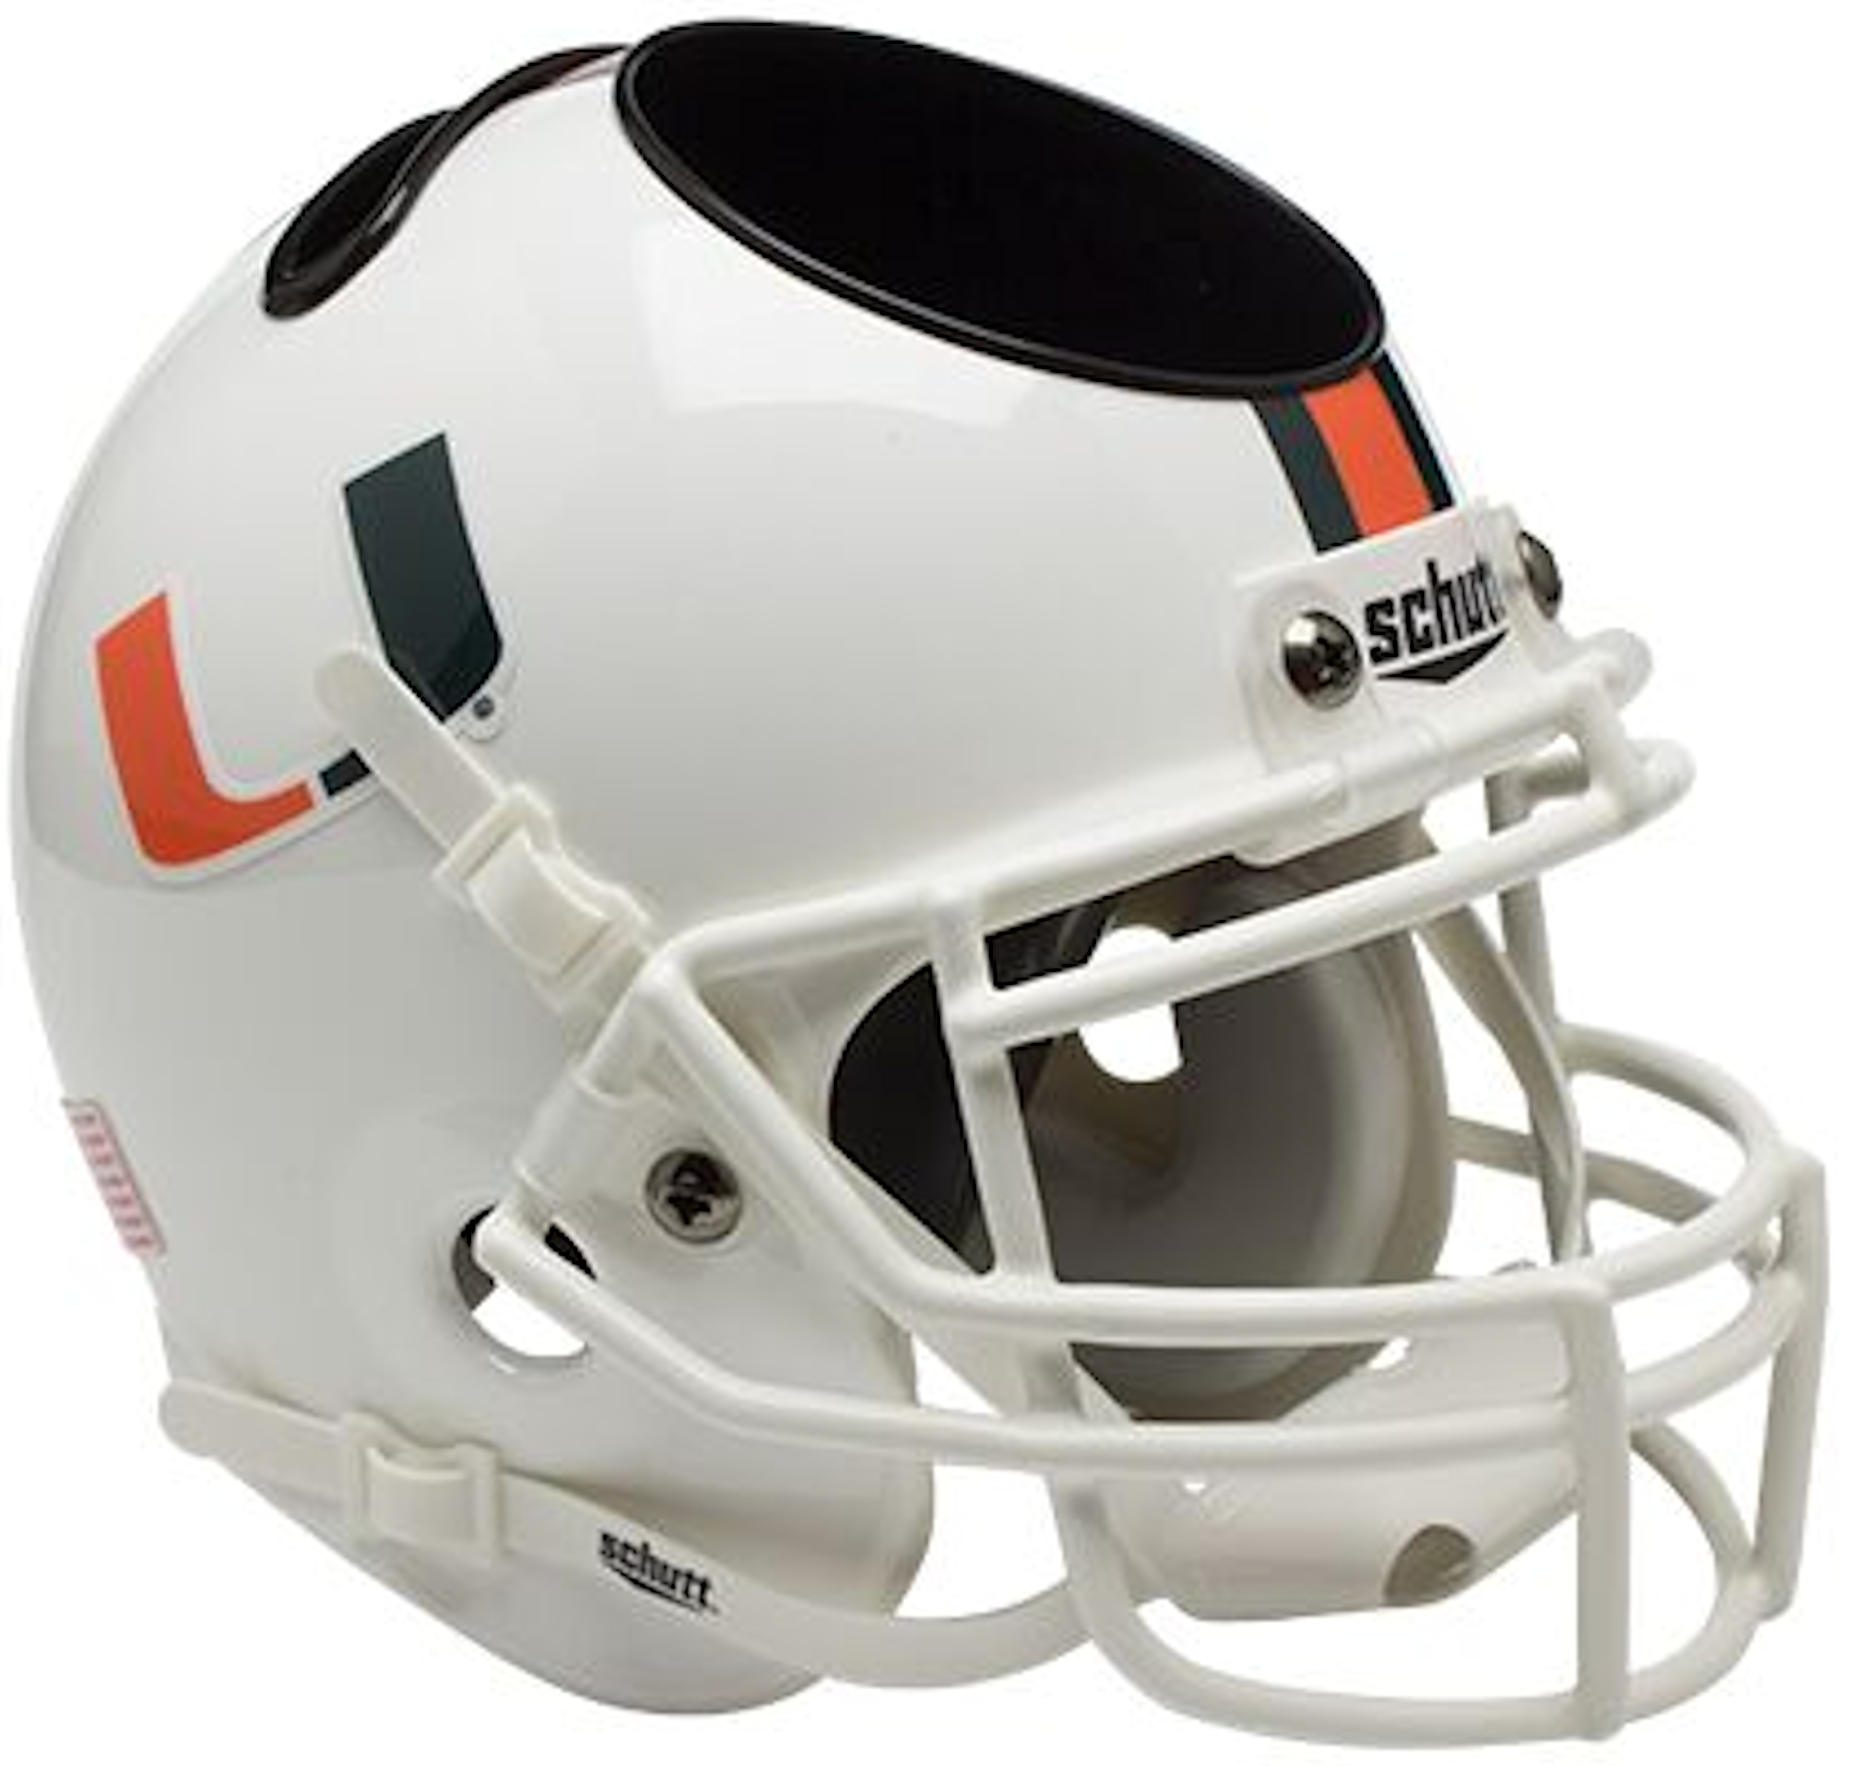 Miami Hurricanes Miniature Football Helmet Desk Caddy